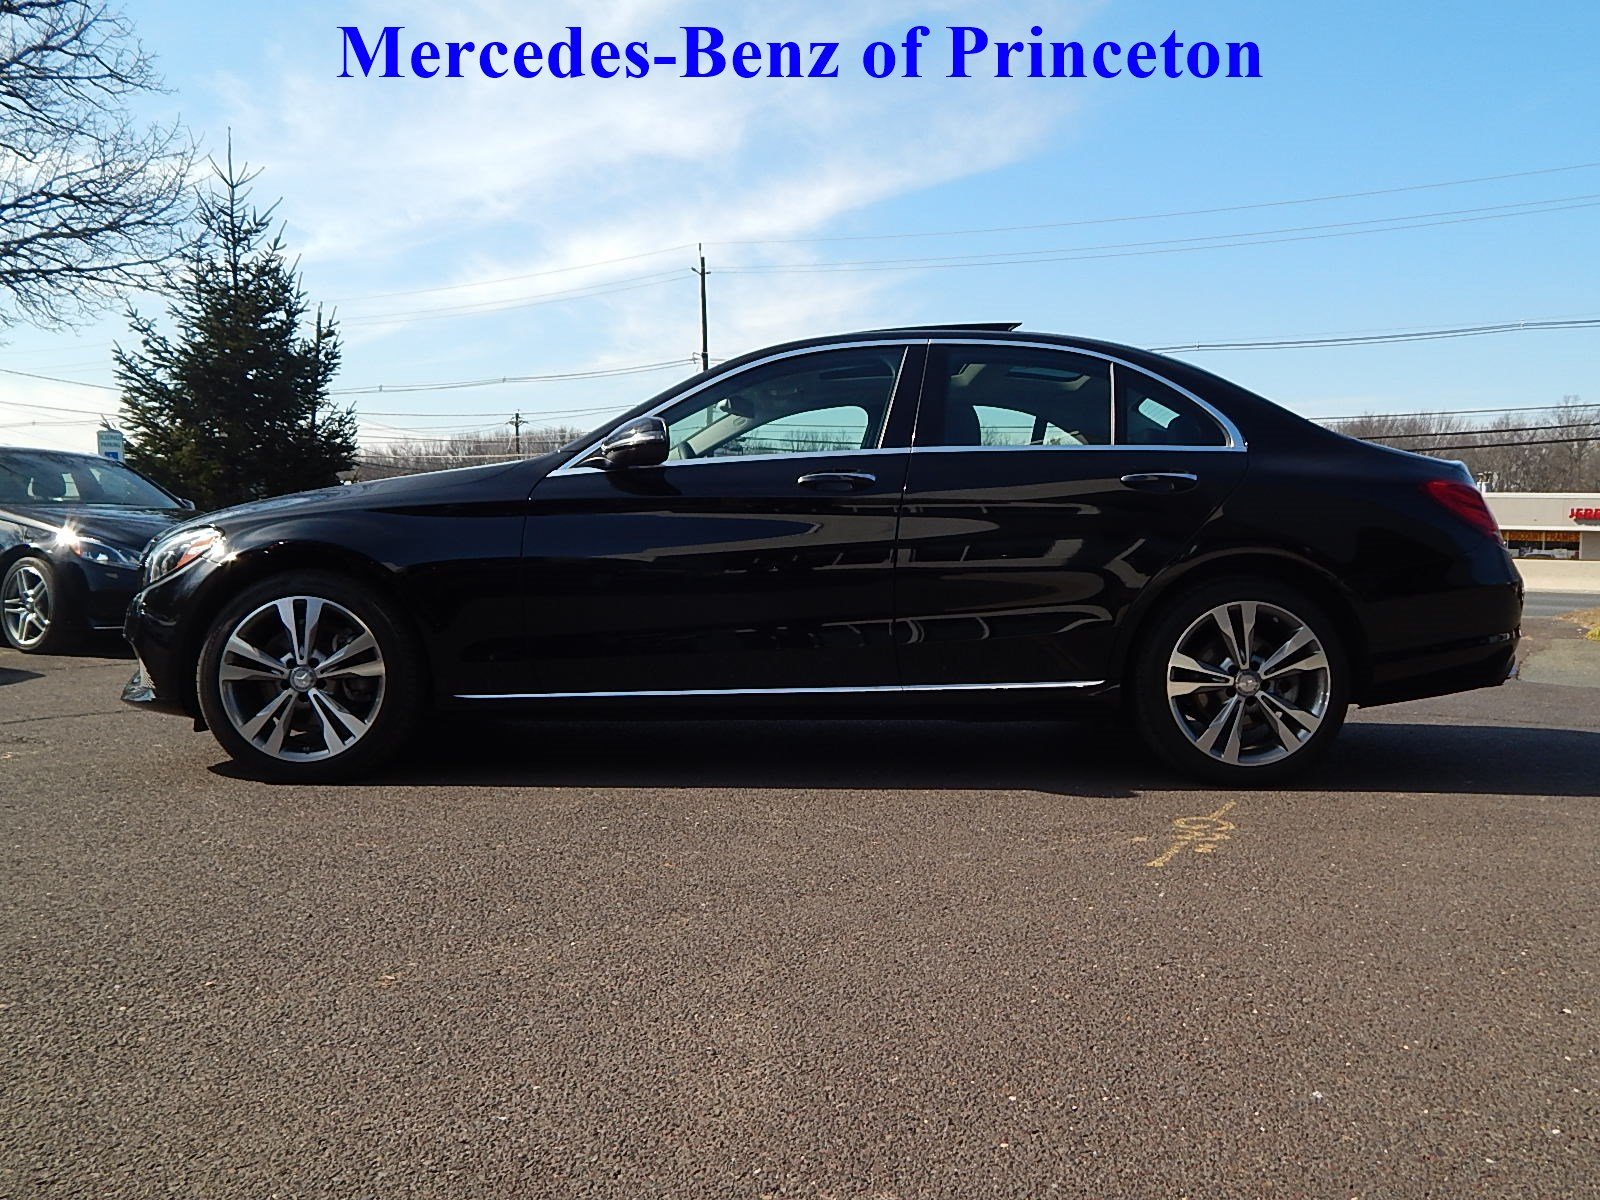 Certified pre owned vehicles mercedes benz of princeton for Mercedes benz pre owned vehicles